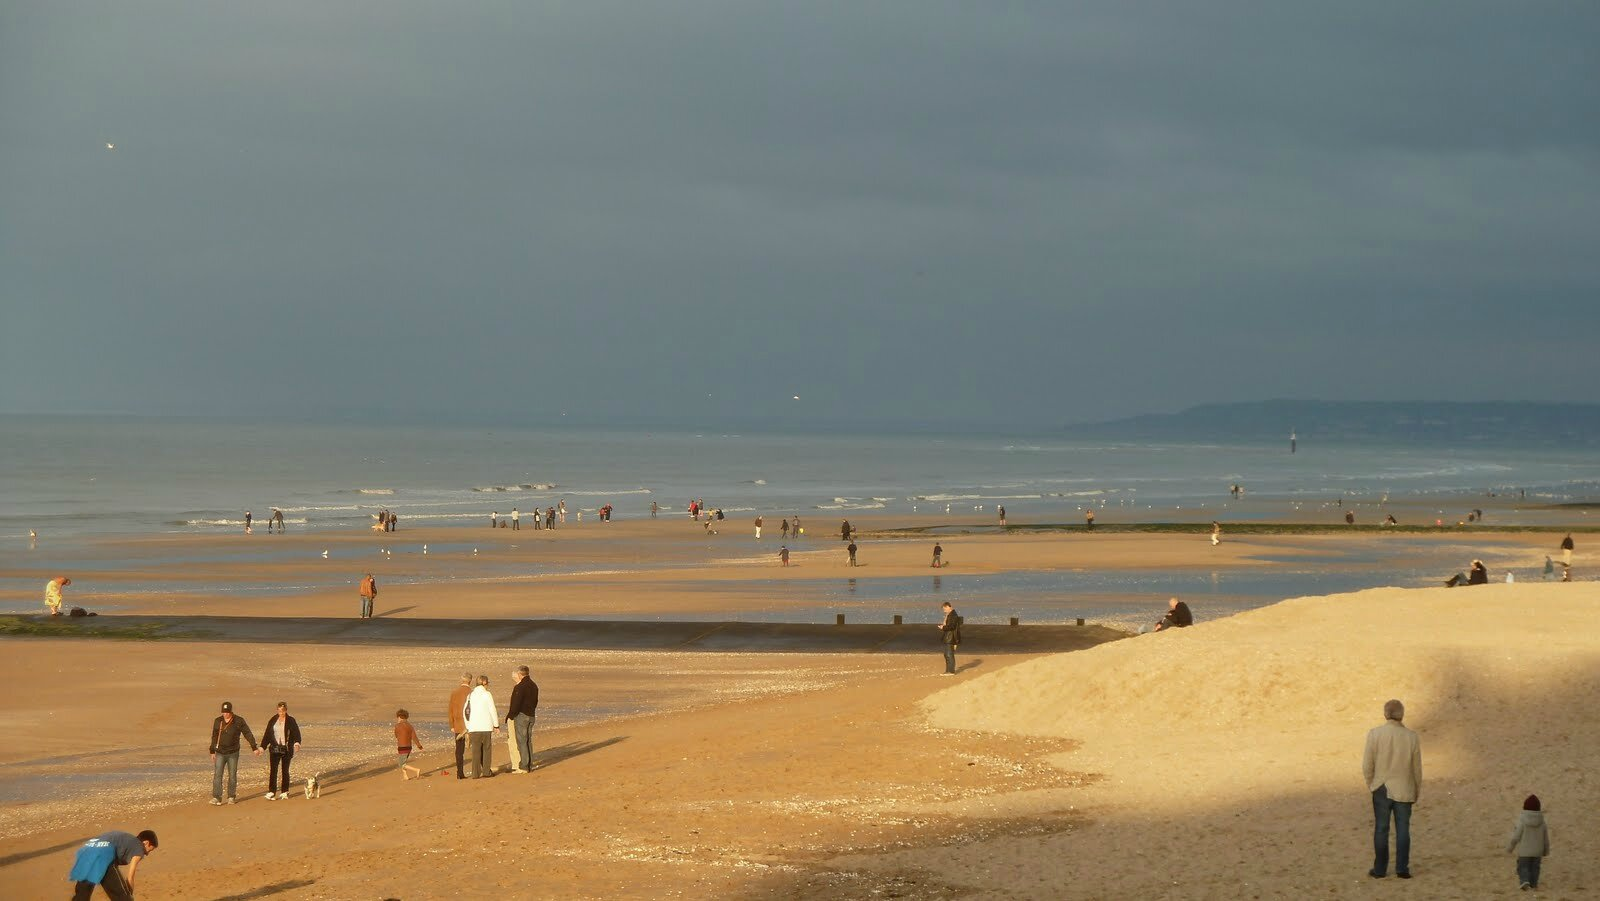 cabourg%252010%252011%2520025